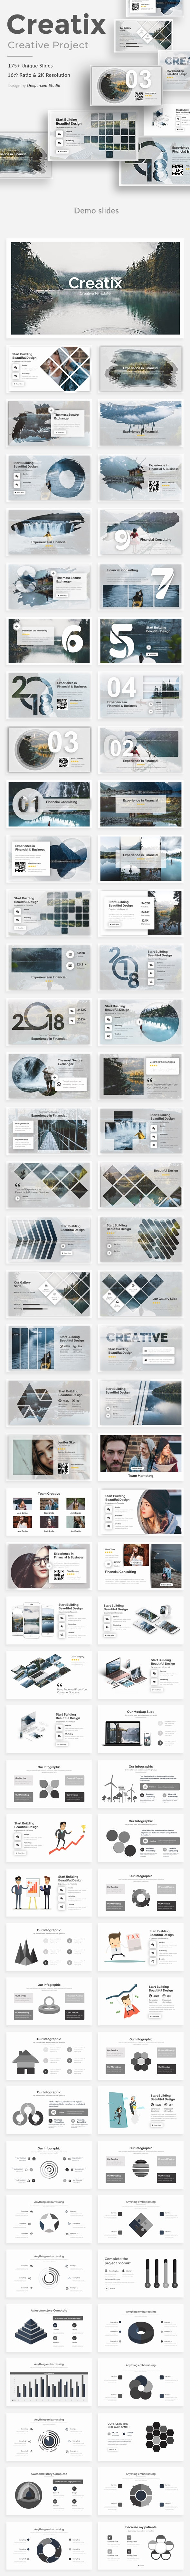 Creatix Creative Keynote Template - Creative Keynote Templates